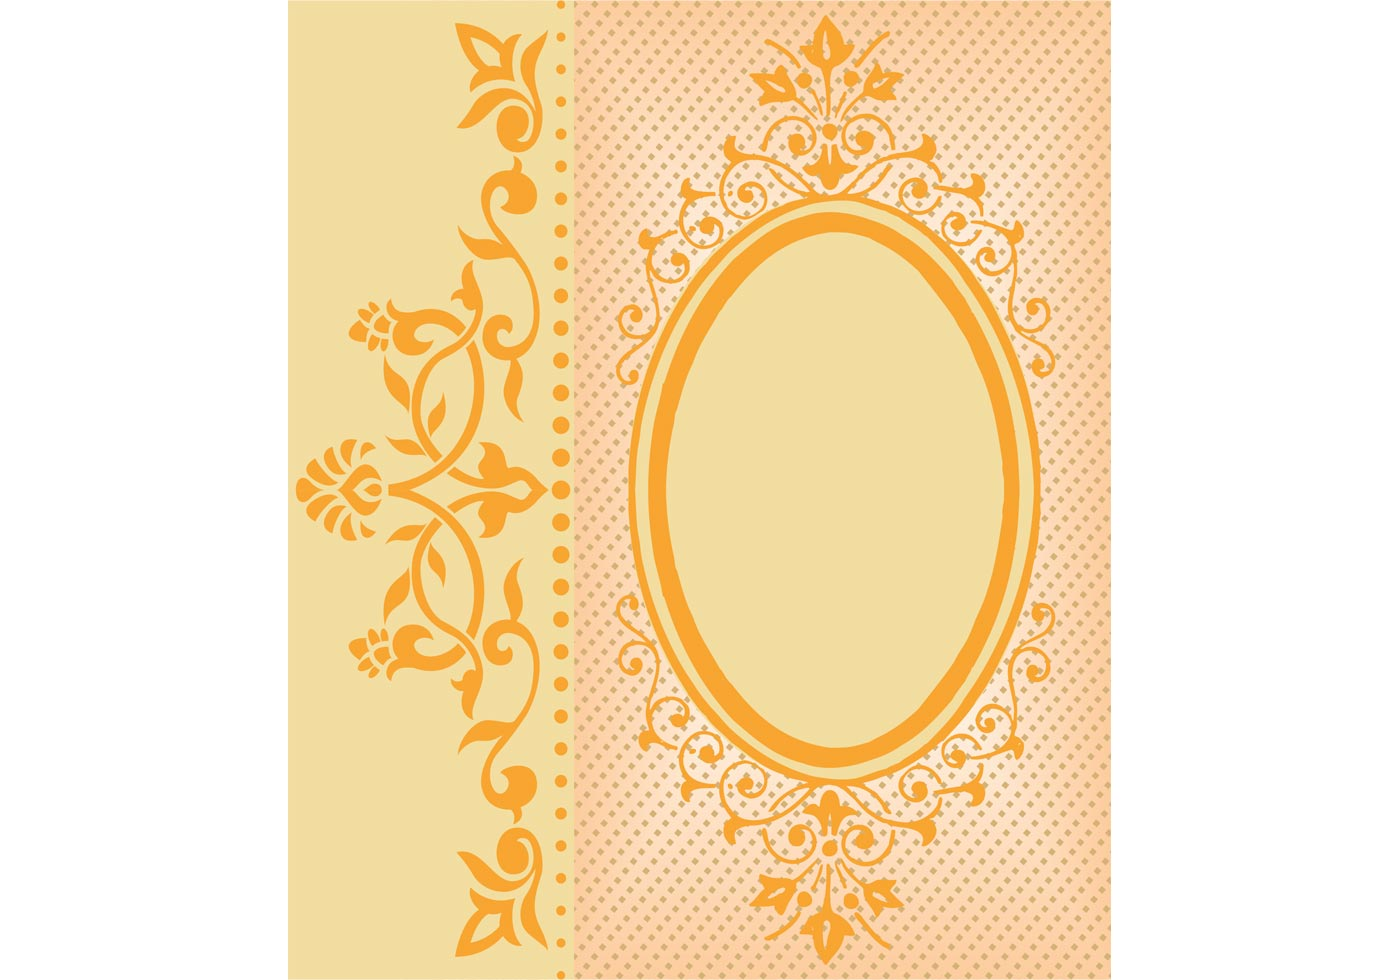 Vintage Background Vector Design 2 Free Vector Art From